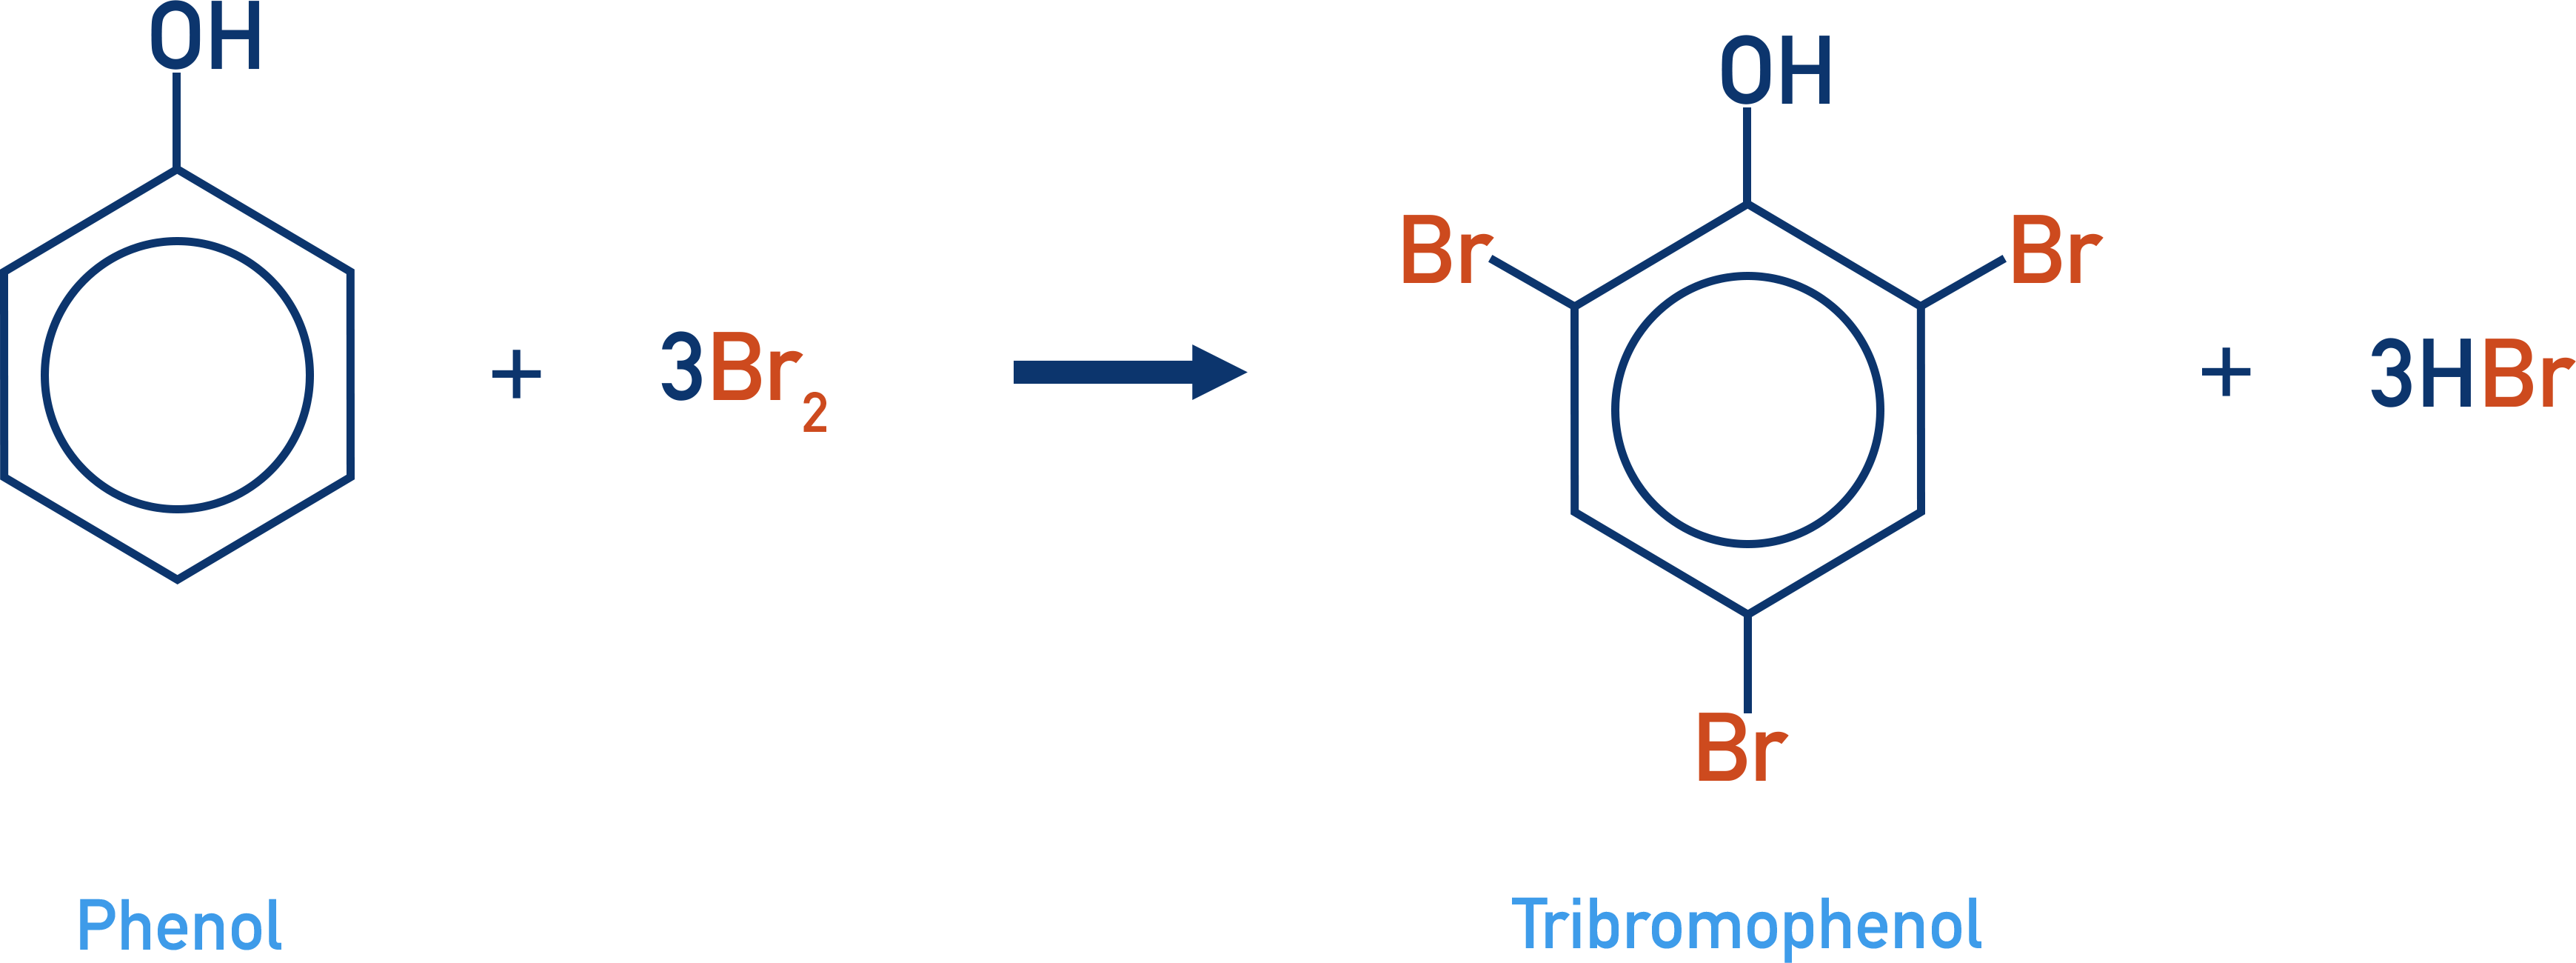 phenol and bromine reaction forming tri-bromophenol